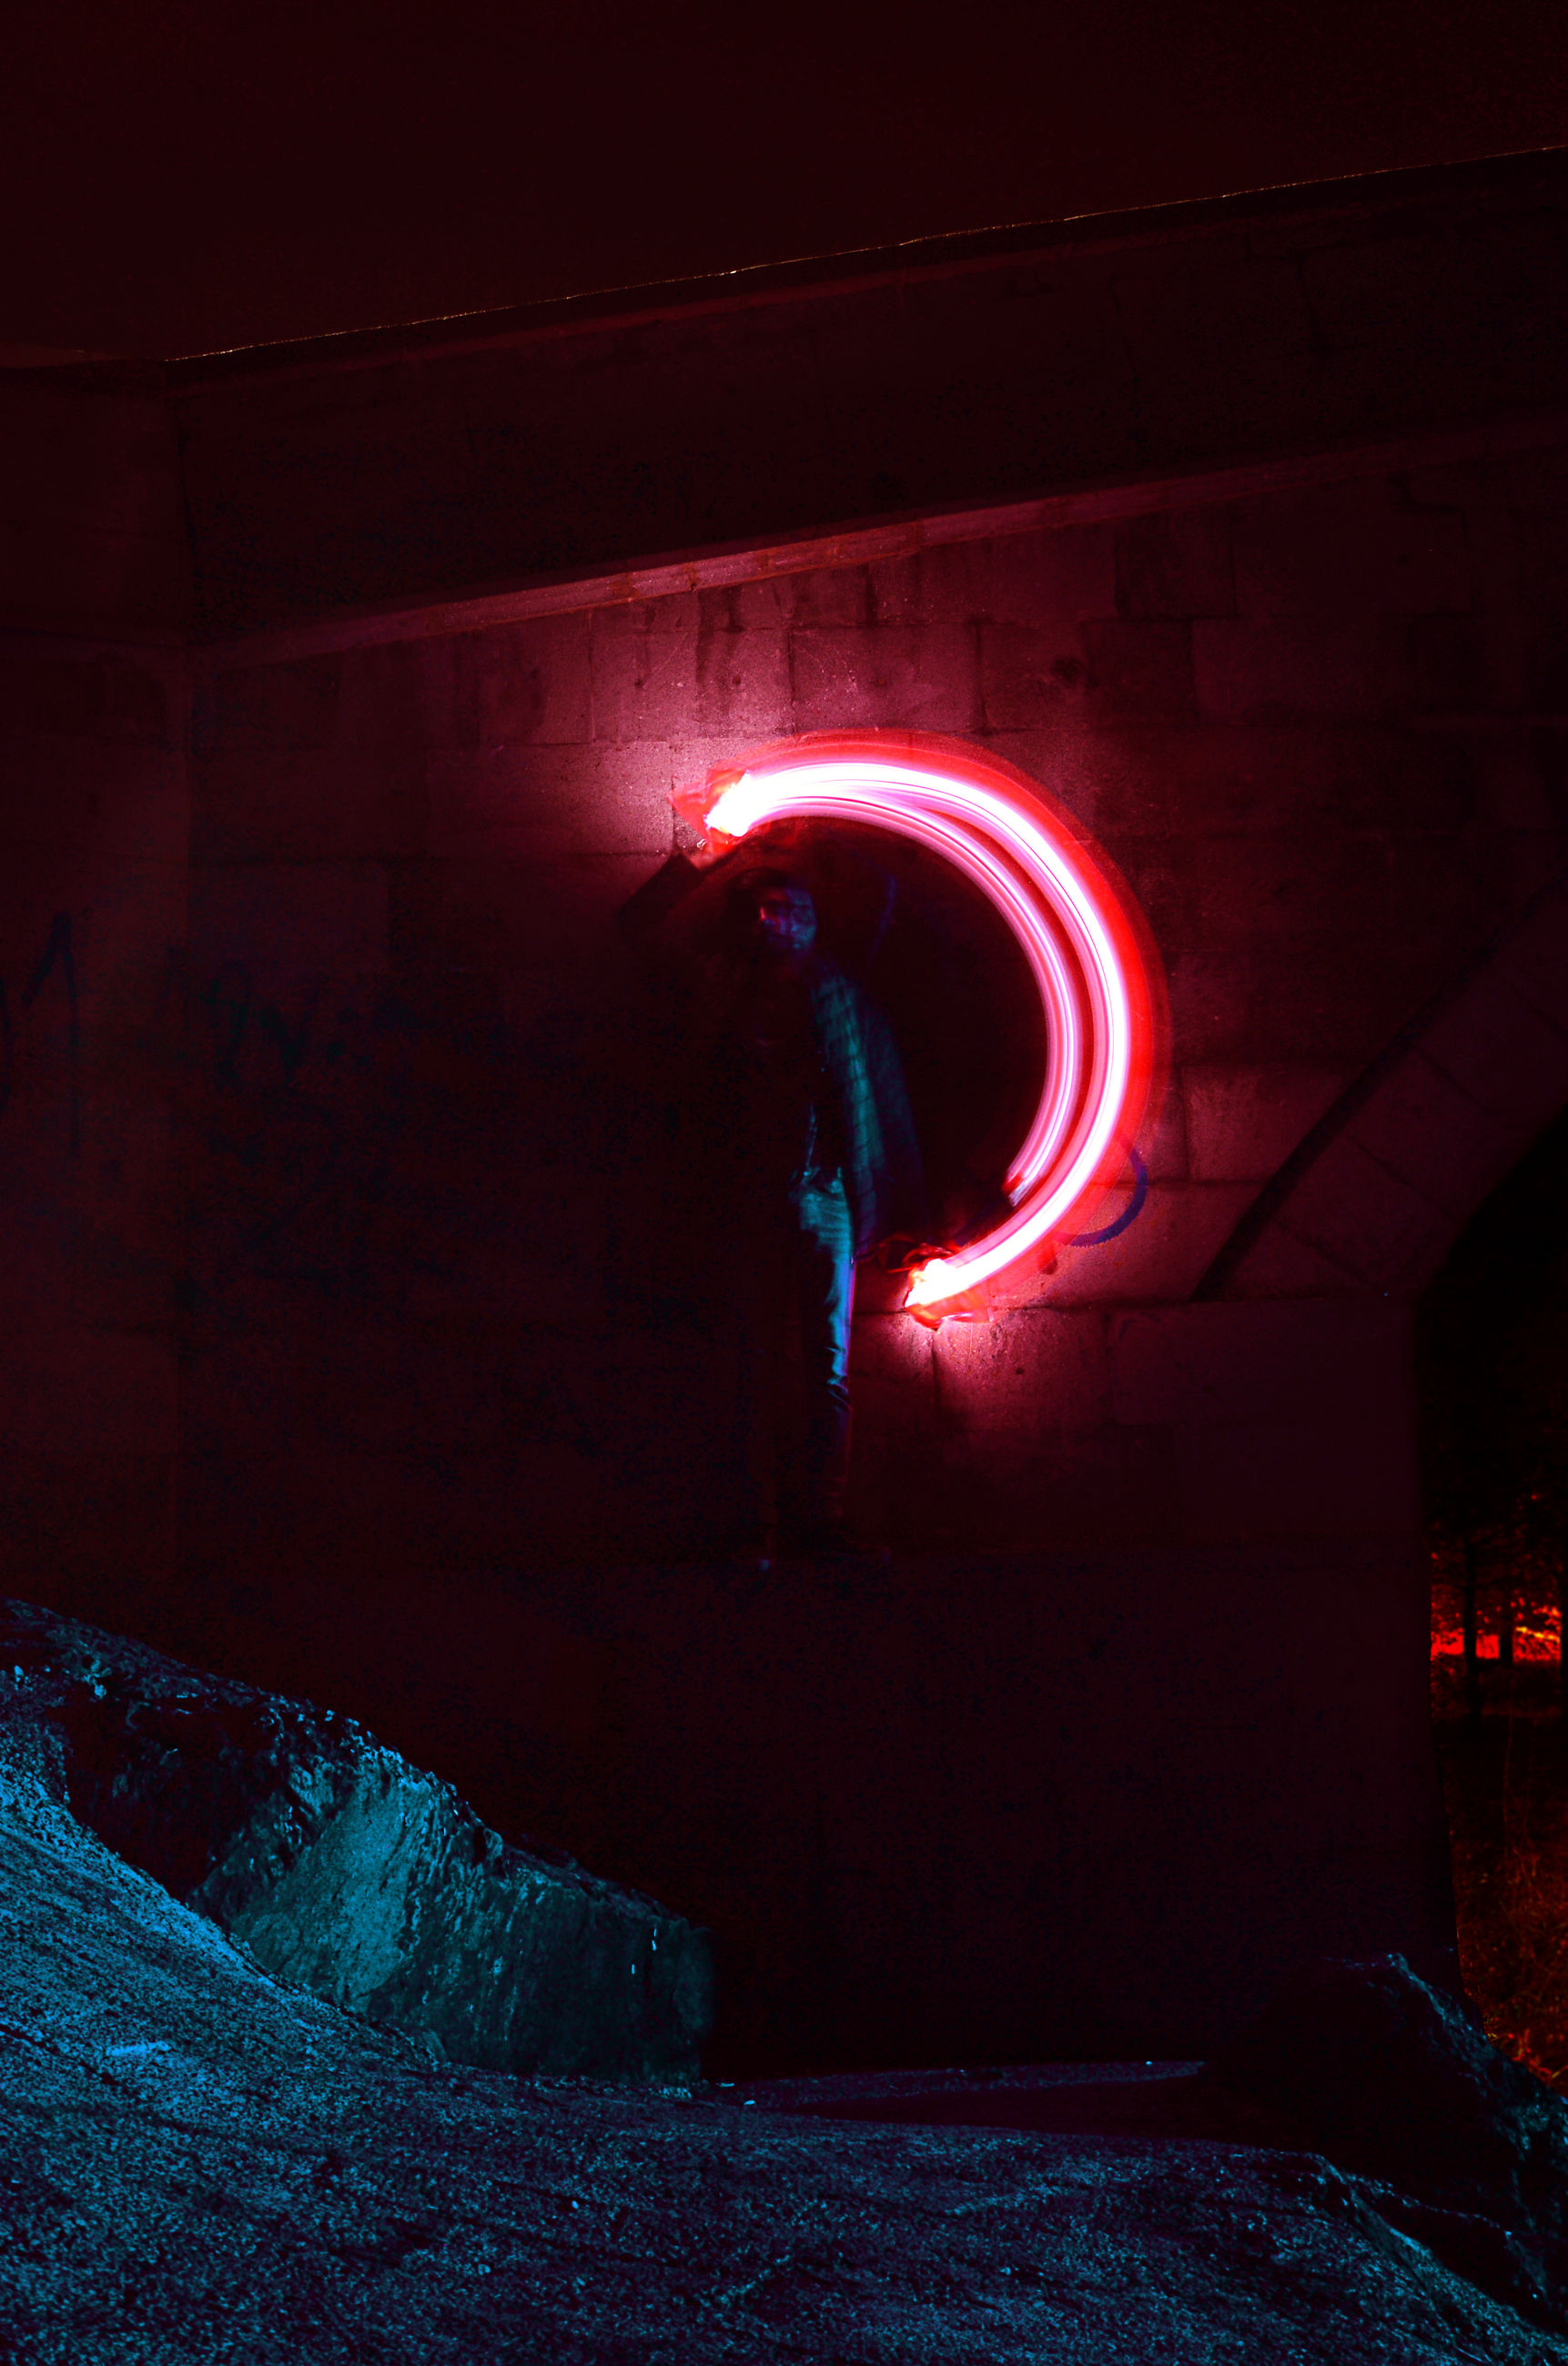 illuminated, night, real people, architecture, glowing, red, one person, built structure, tunnel, motion, wall - building feature, standing, indoors, arch, men, light - natural phenomenon, lifestyles, long exposure, lighting equipment, light